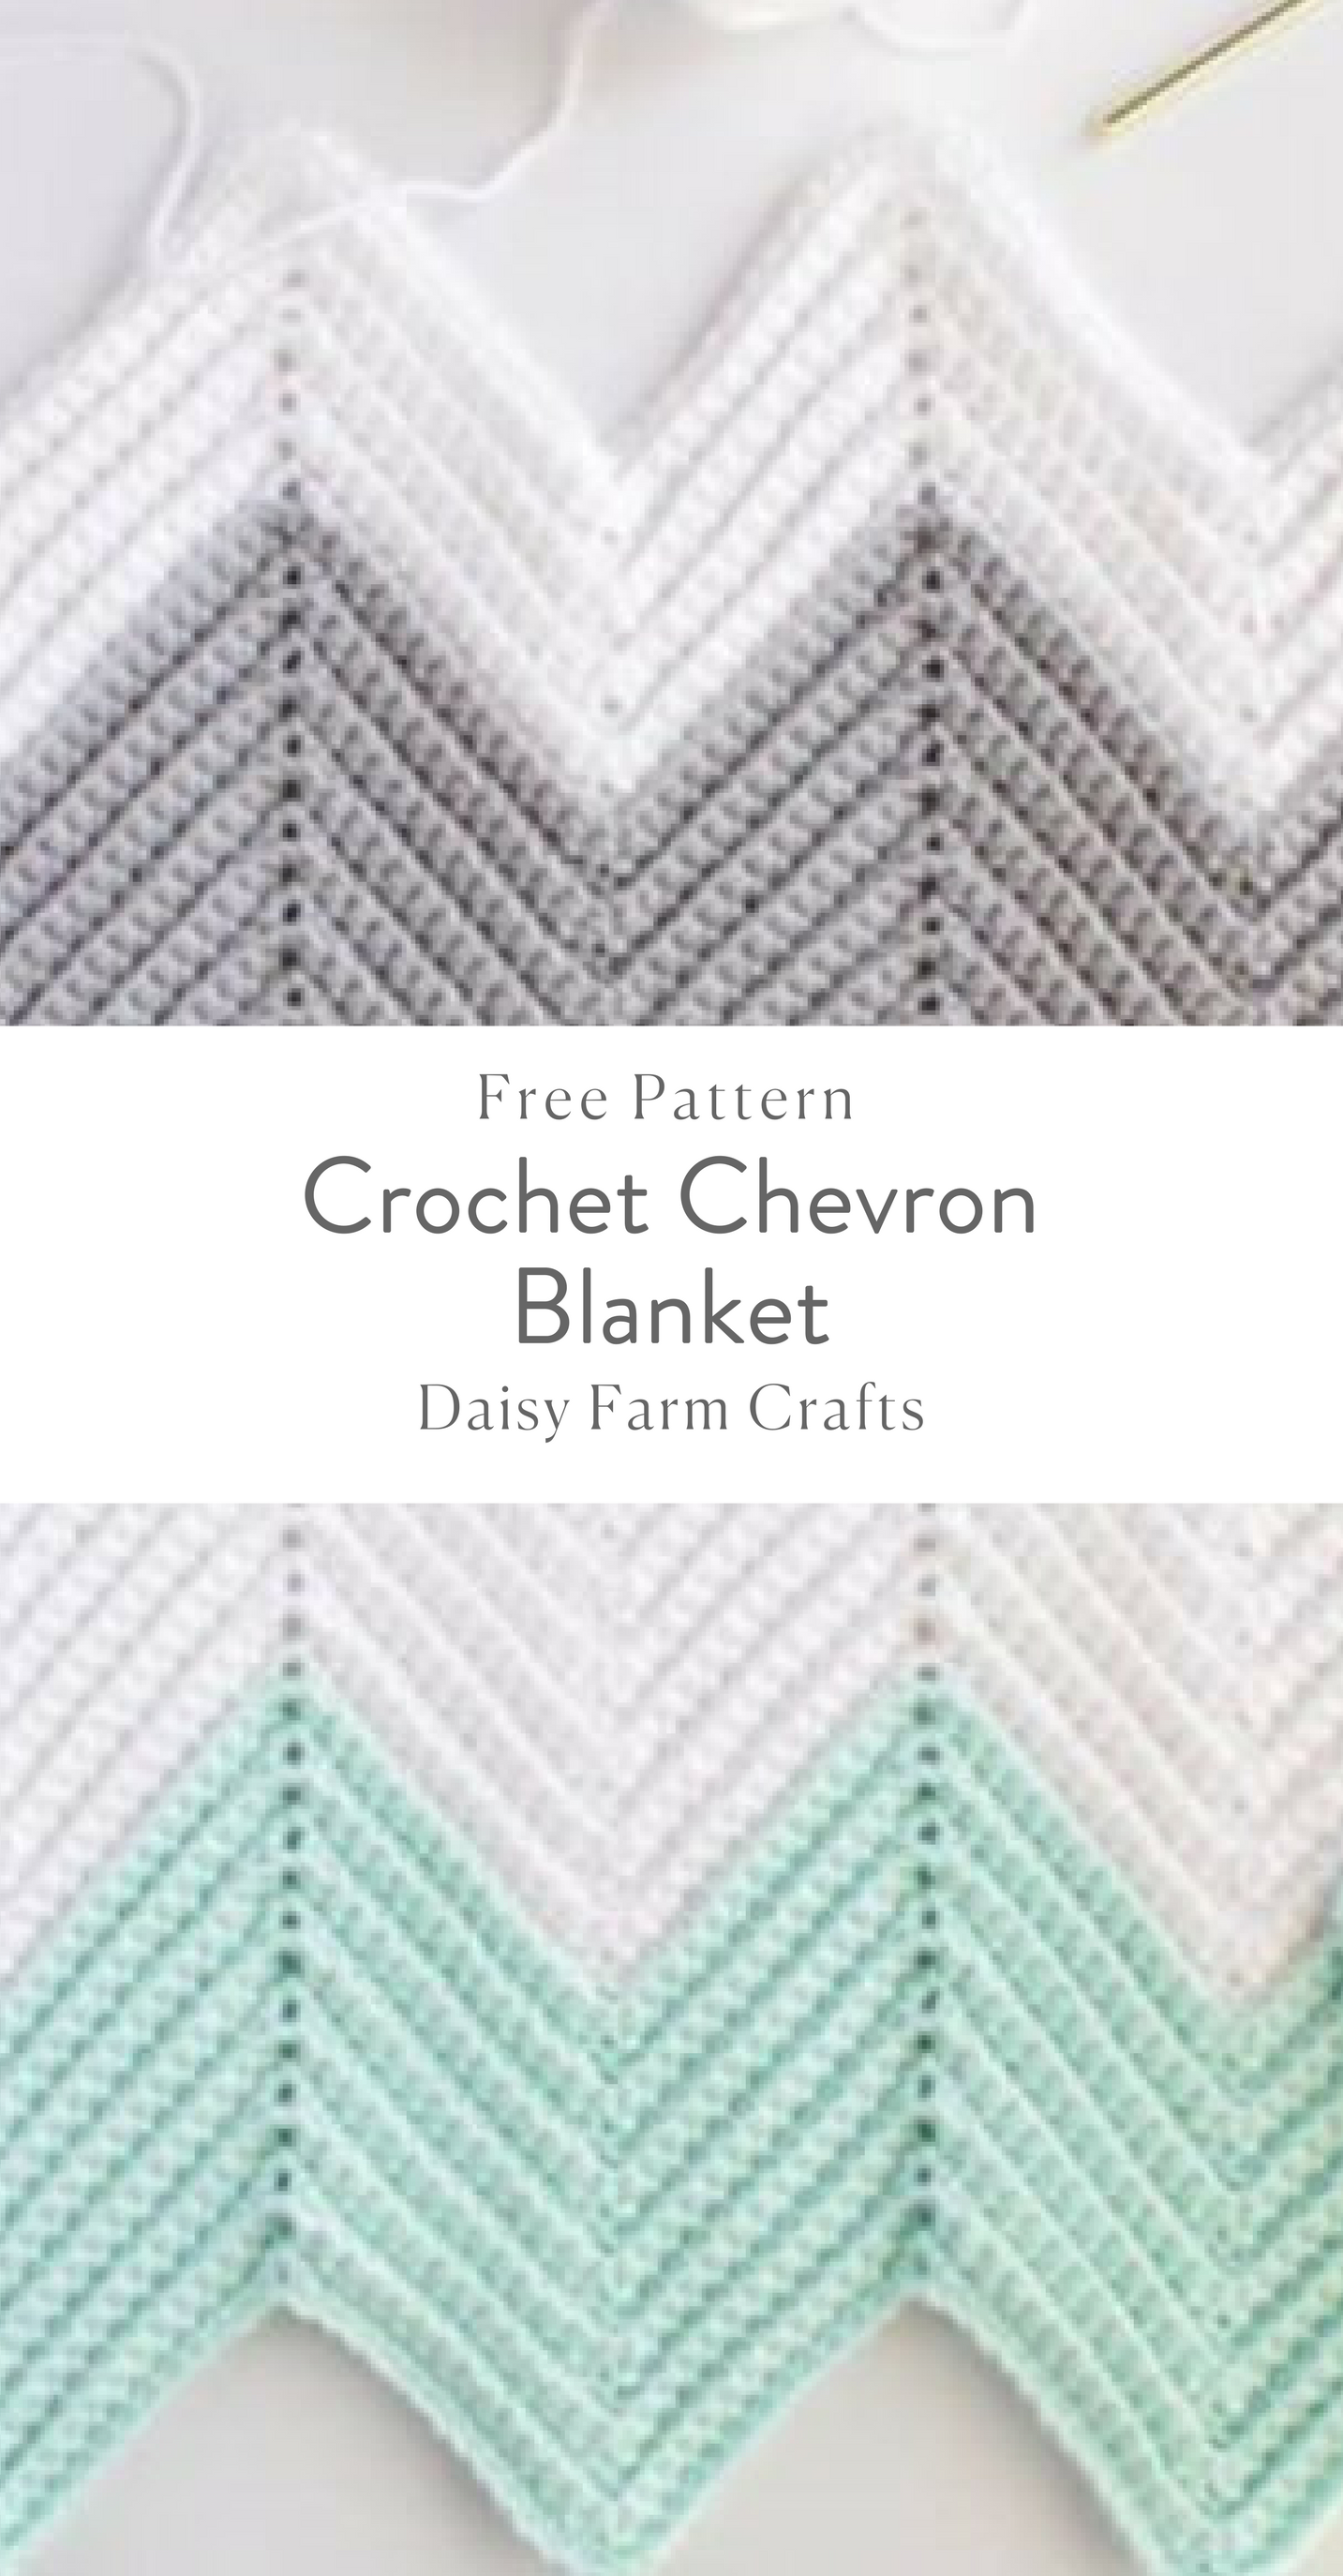 Free Pattern - Crochet Chevron Blanket #CrochetProjects | Knit ...